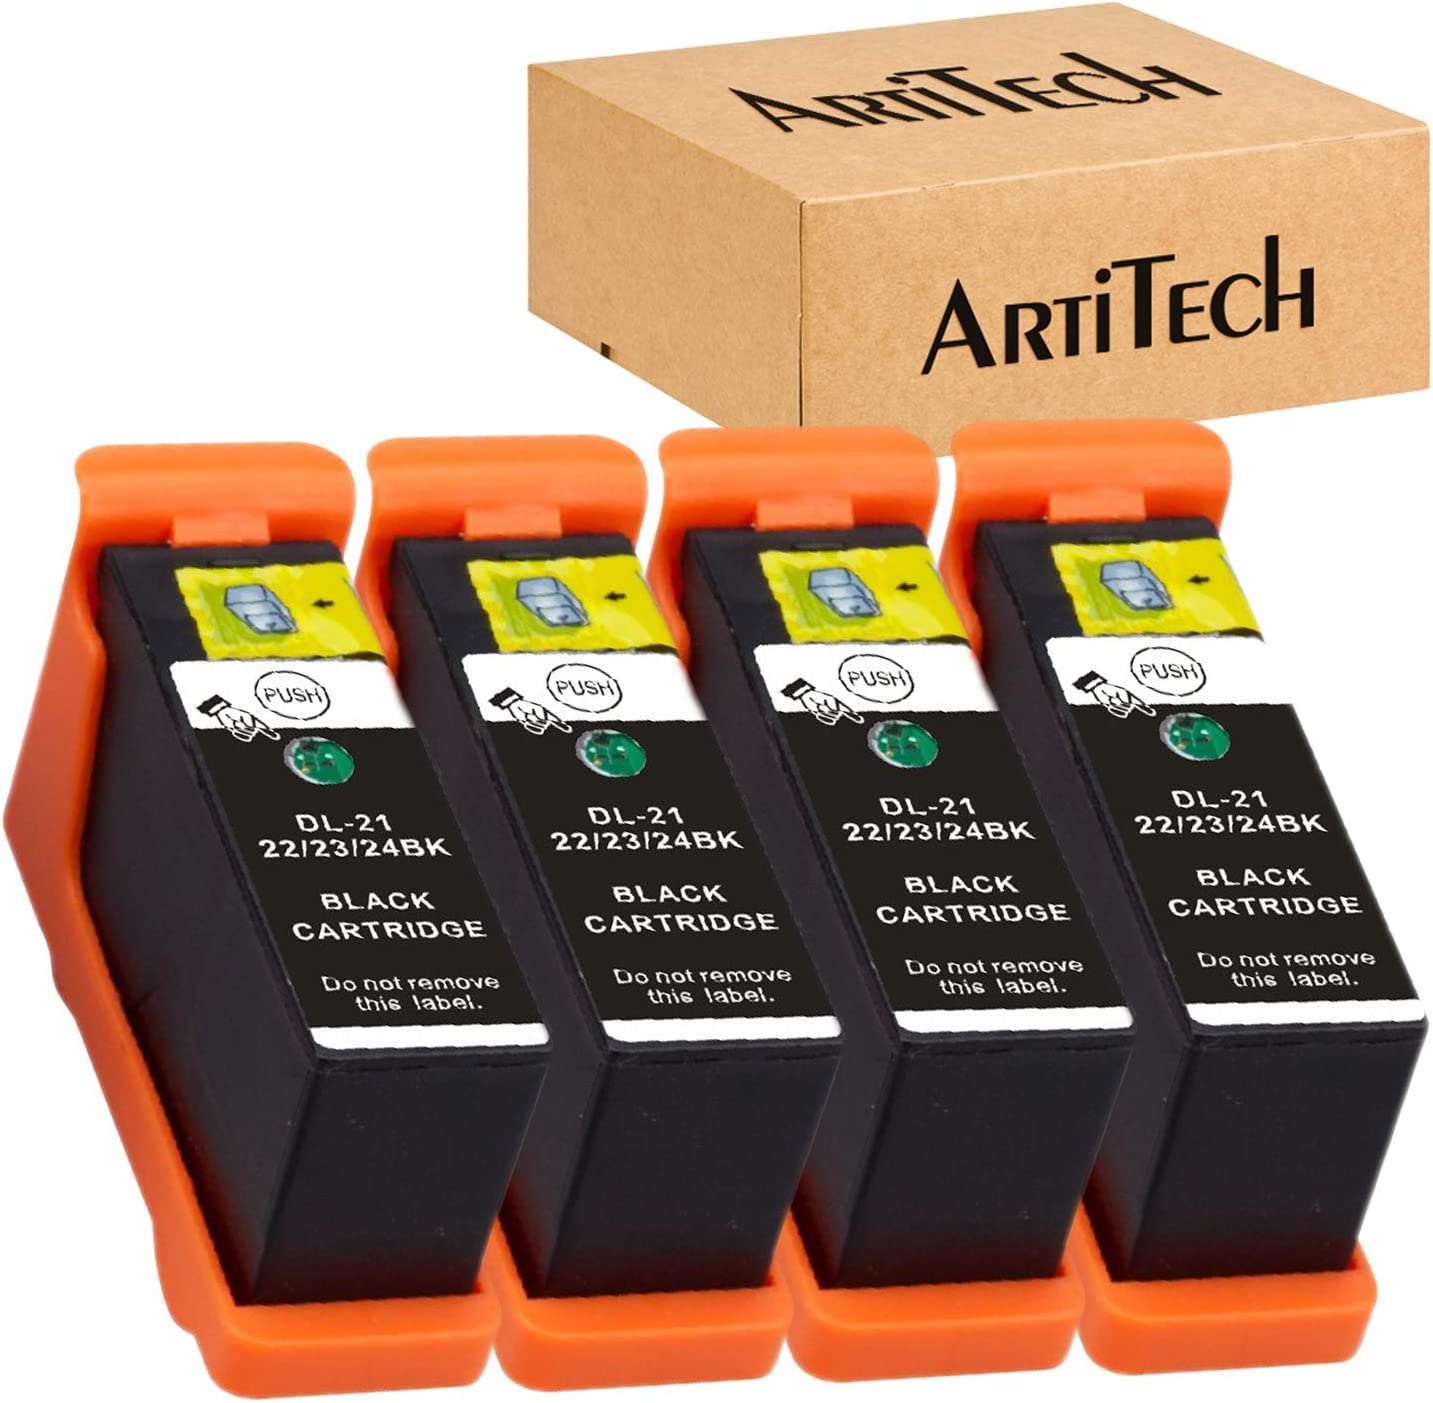 Replace for Dell Series 21 Ink Cartridges Compatible for Dell V515w, V715w, P513w, P713w, V313, V313w, P713w, All-in-One Printers 4 Pack for Dell Black Series 21, Series 22, Series 23